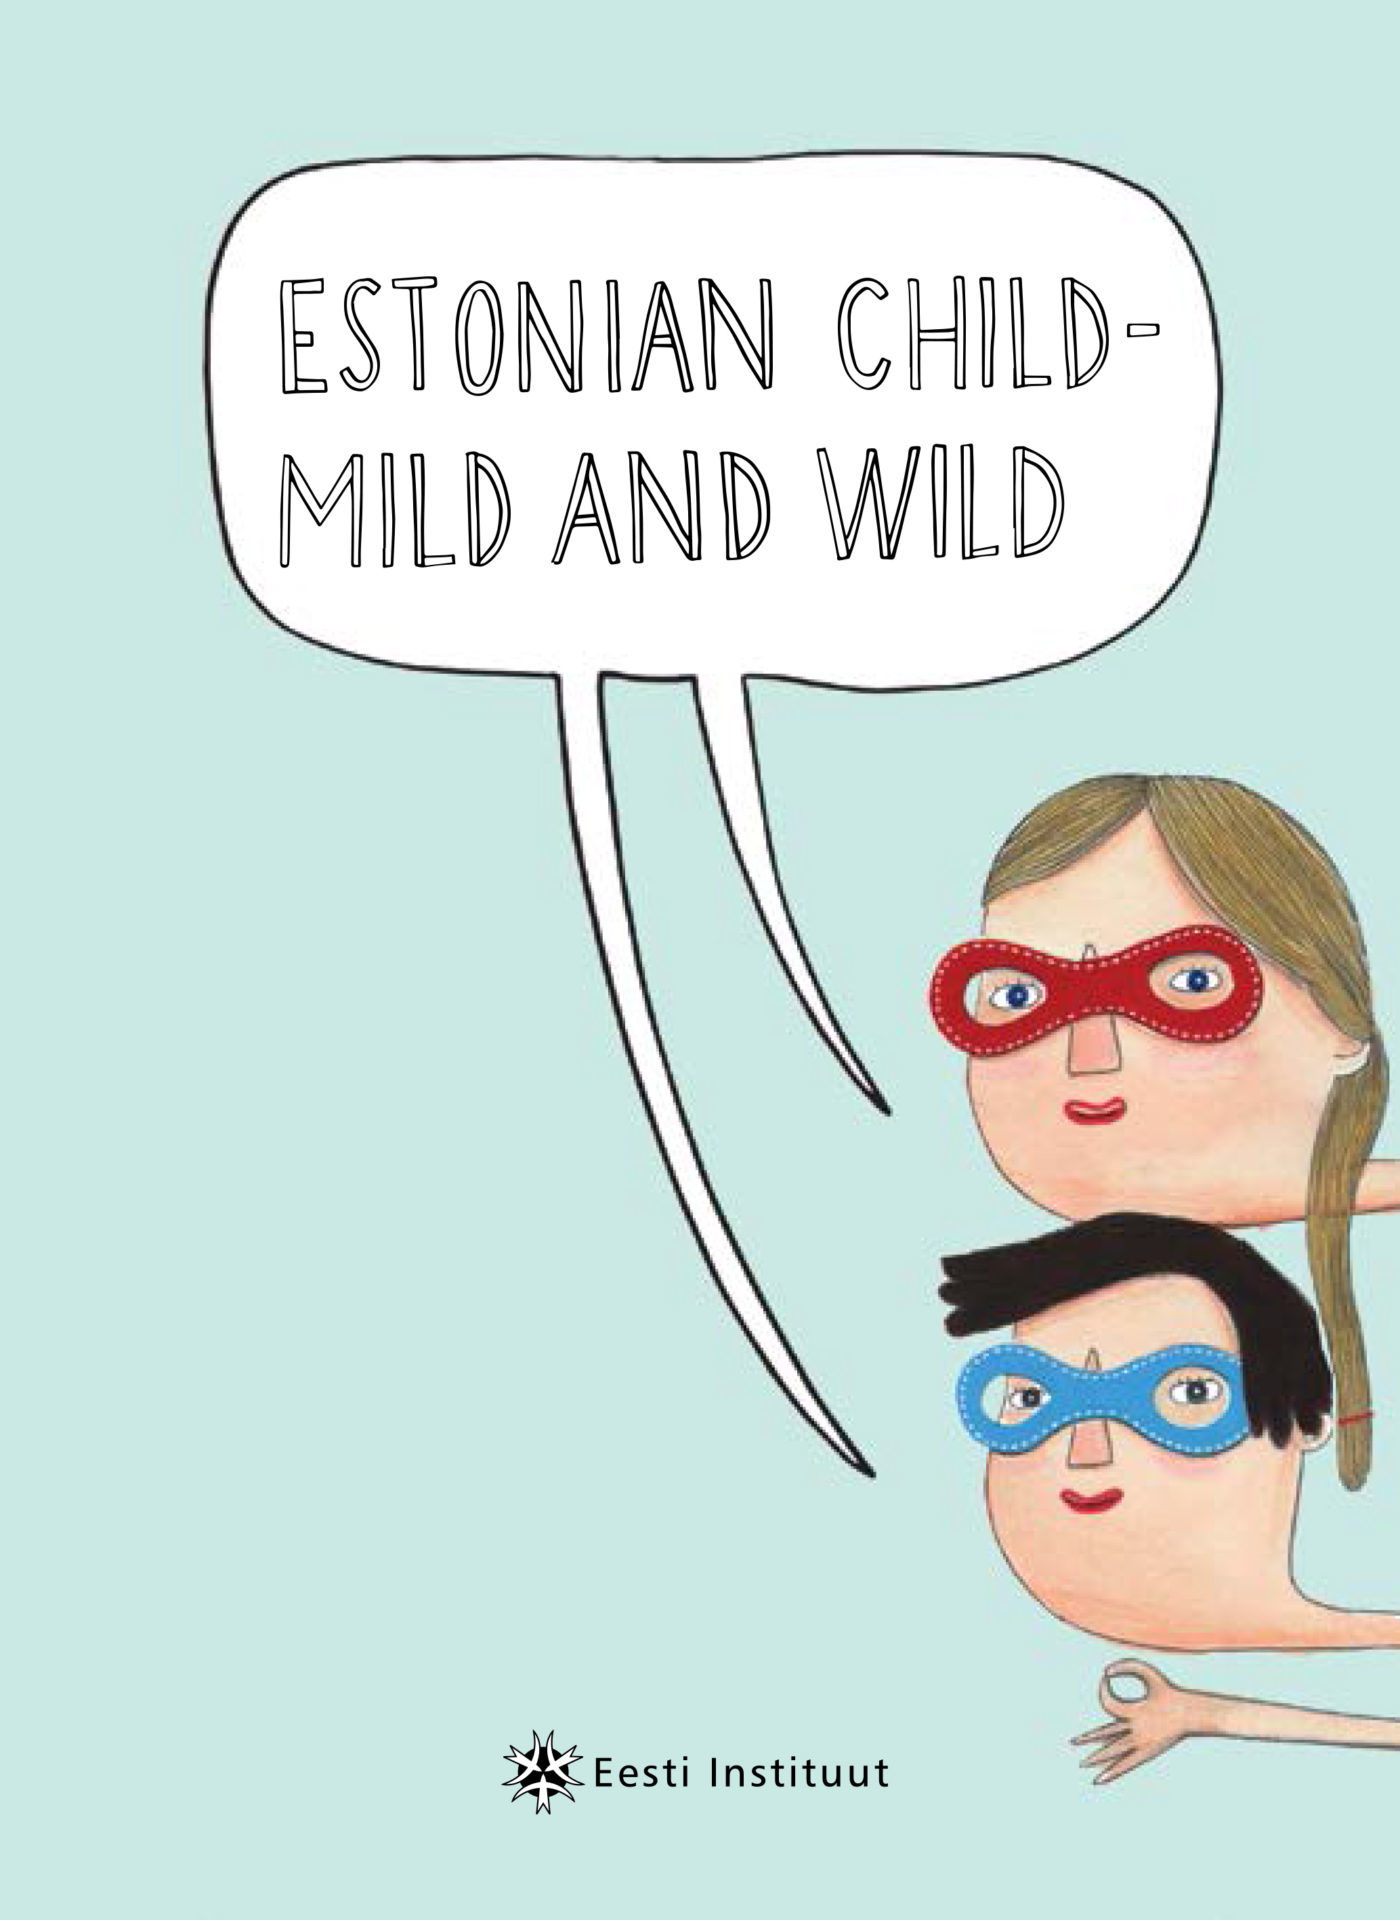 Four Estonian children's books translated into English and